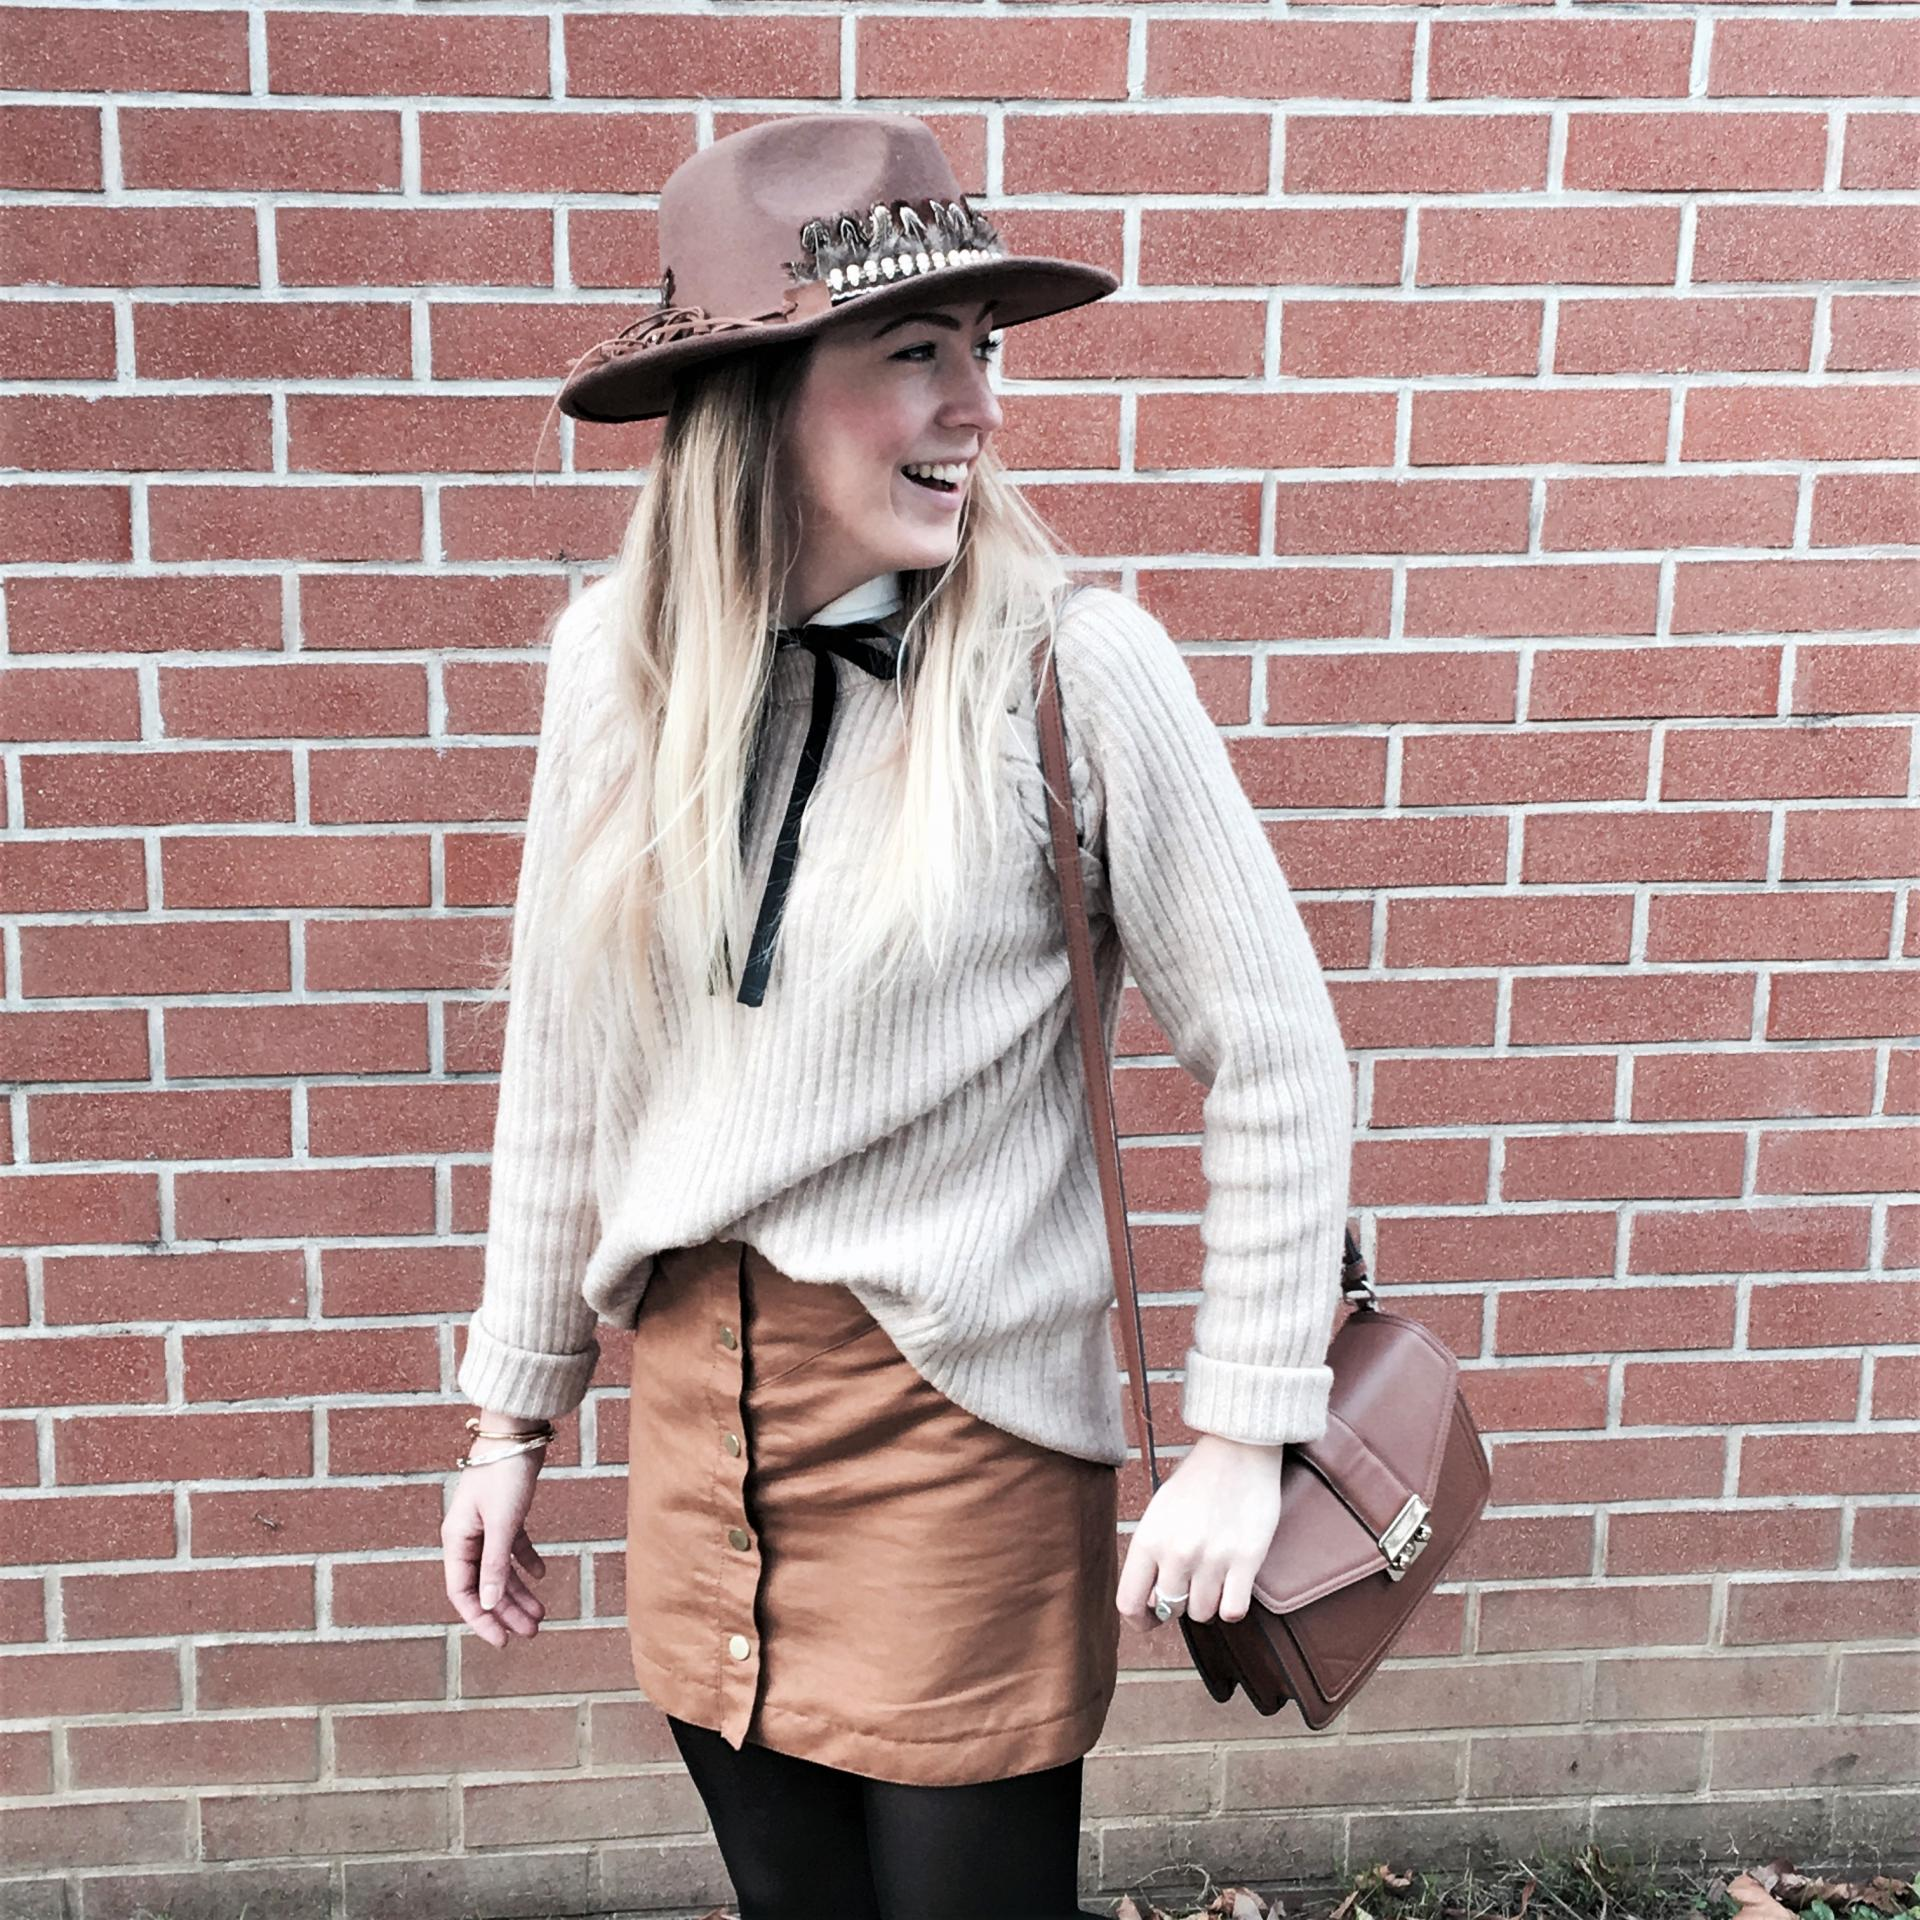 Sharefashion - Comment porter la jupe en automne ?